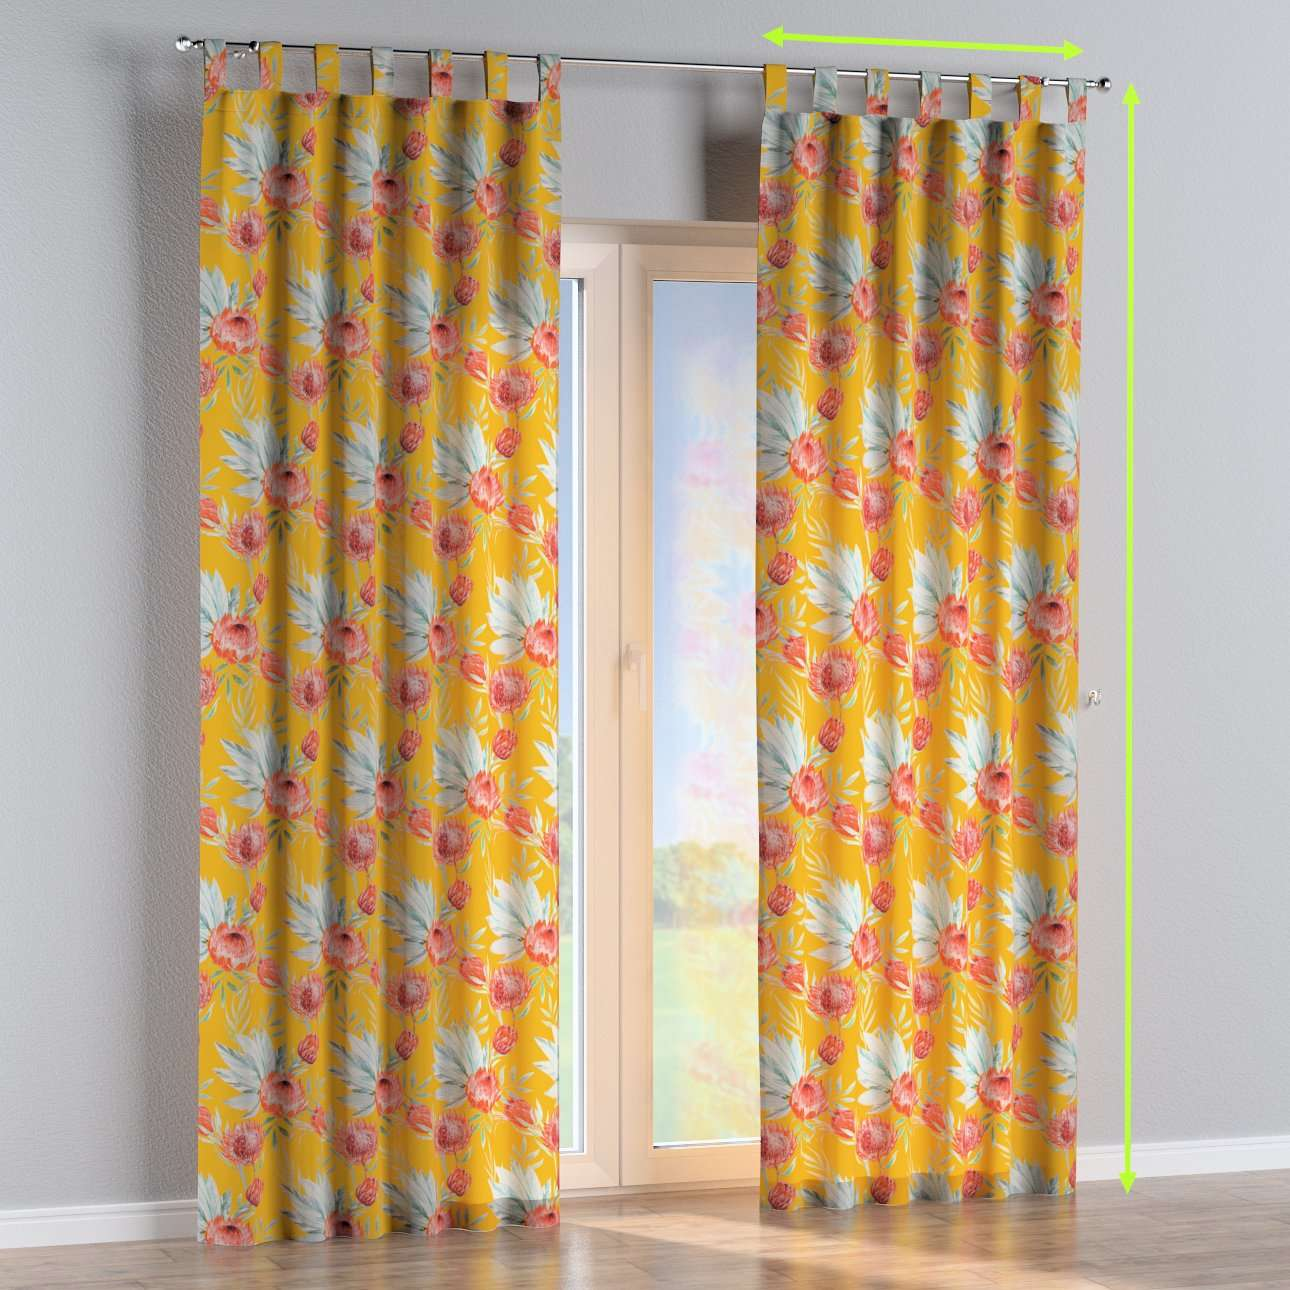 Tab top curtains in collection New Art, fabric: 141-58